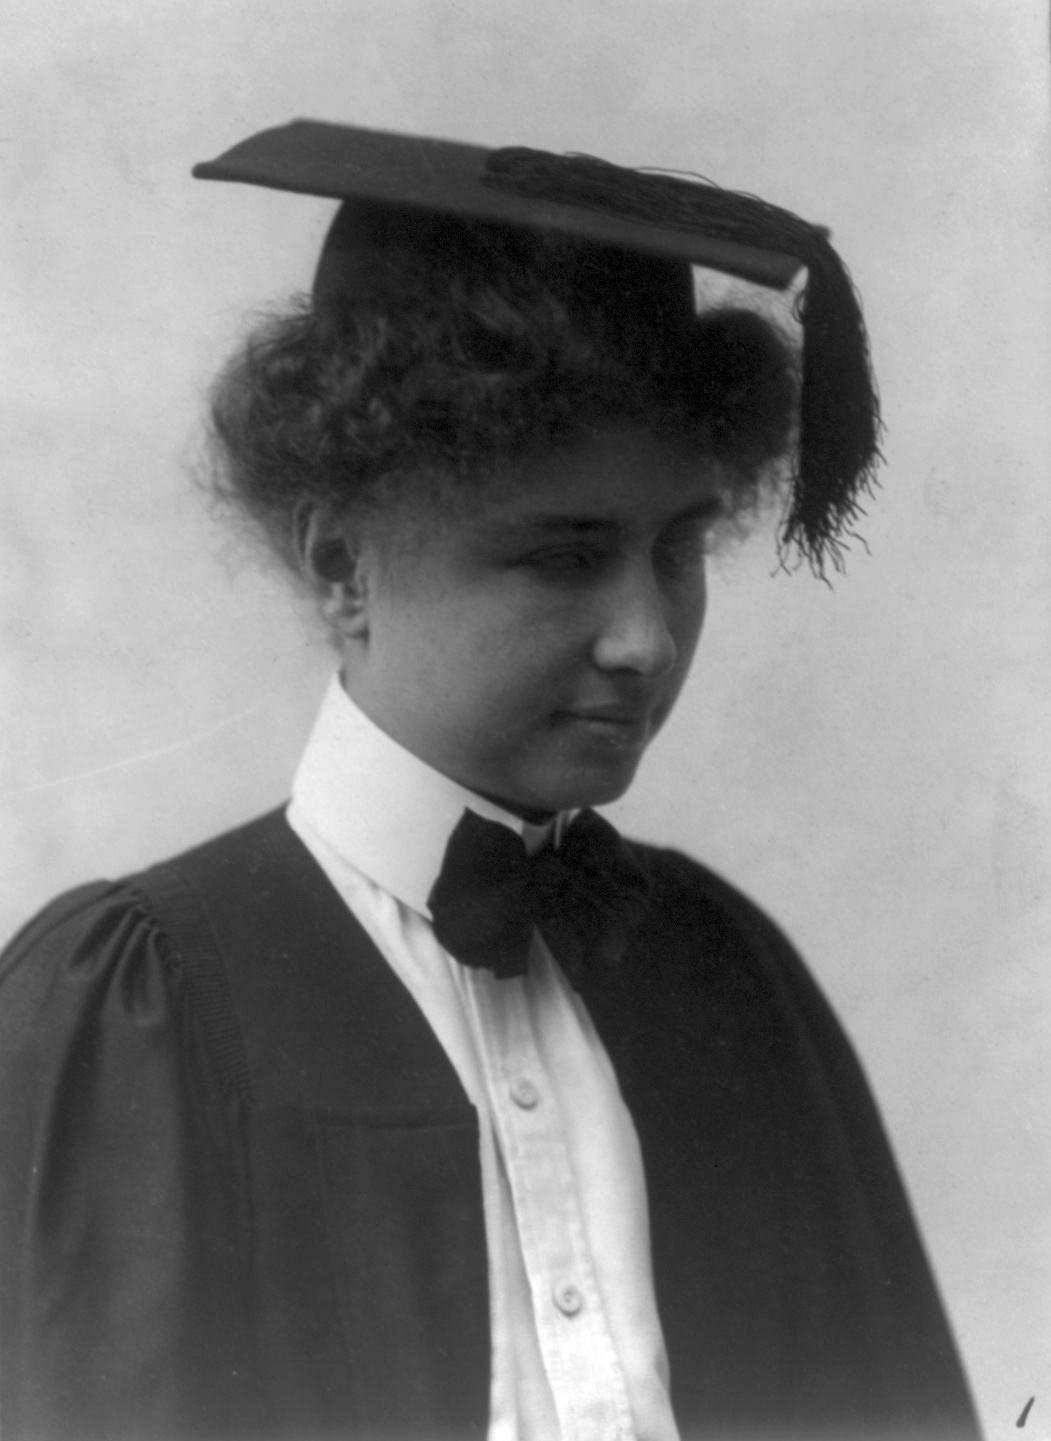 Photograph of Helen Keller with a mortarboard on her head